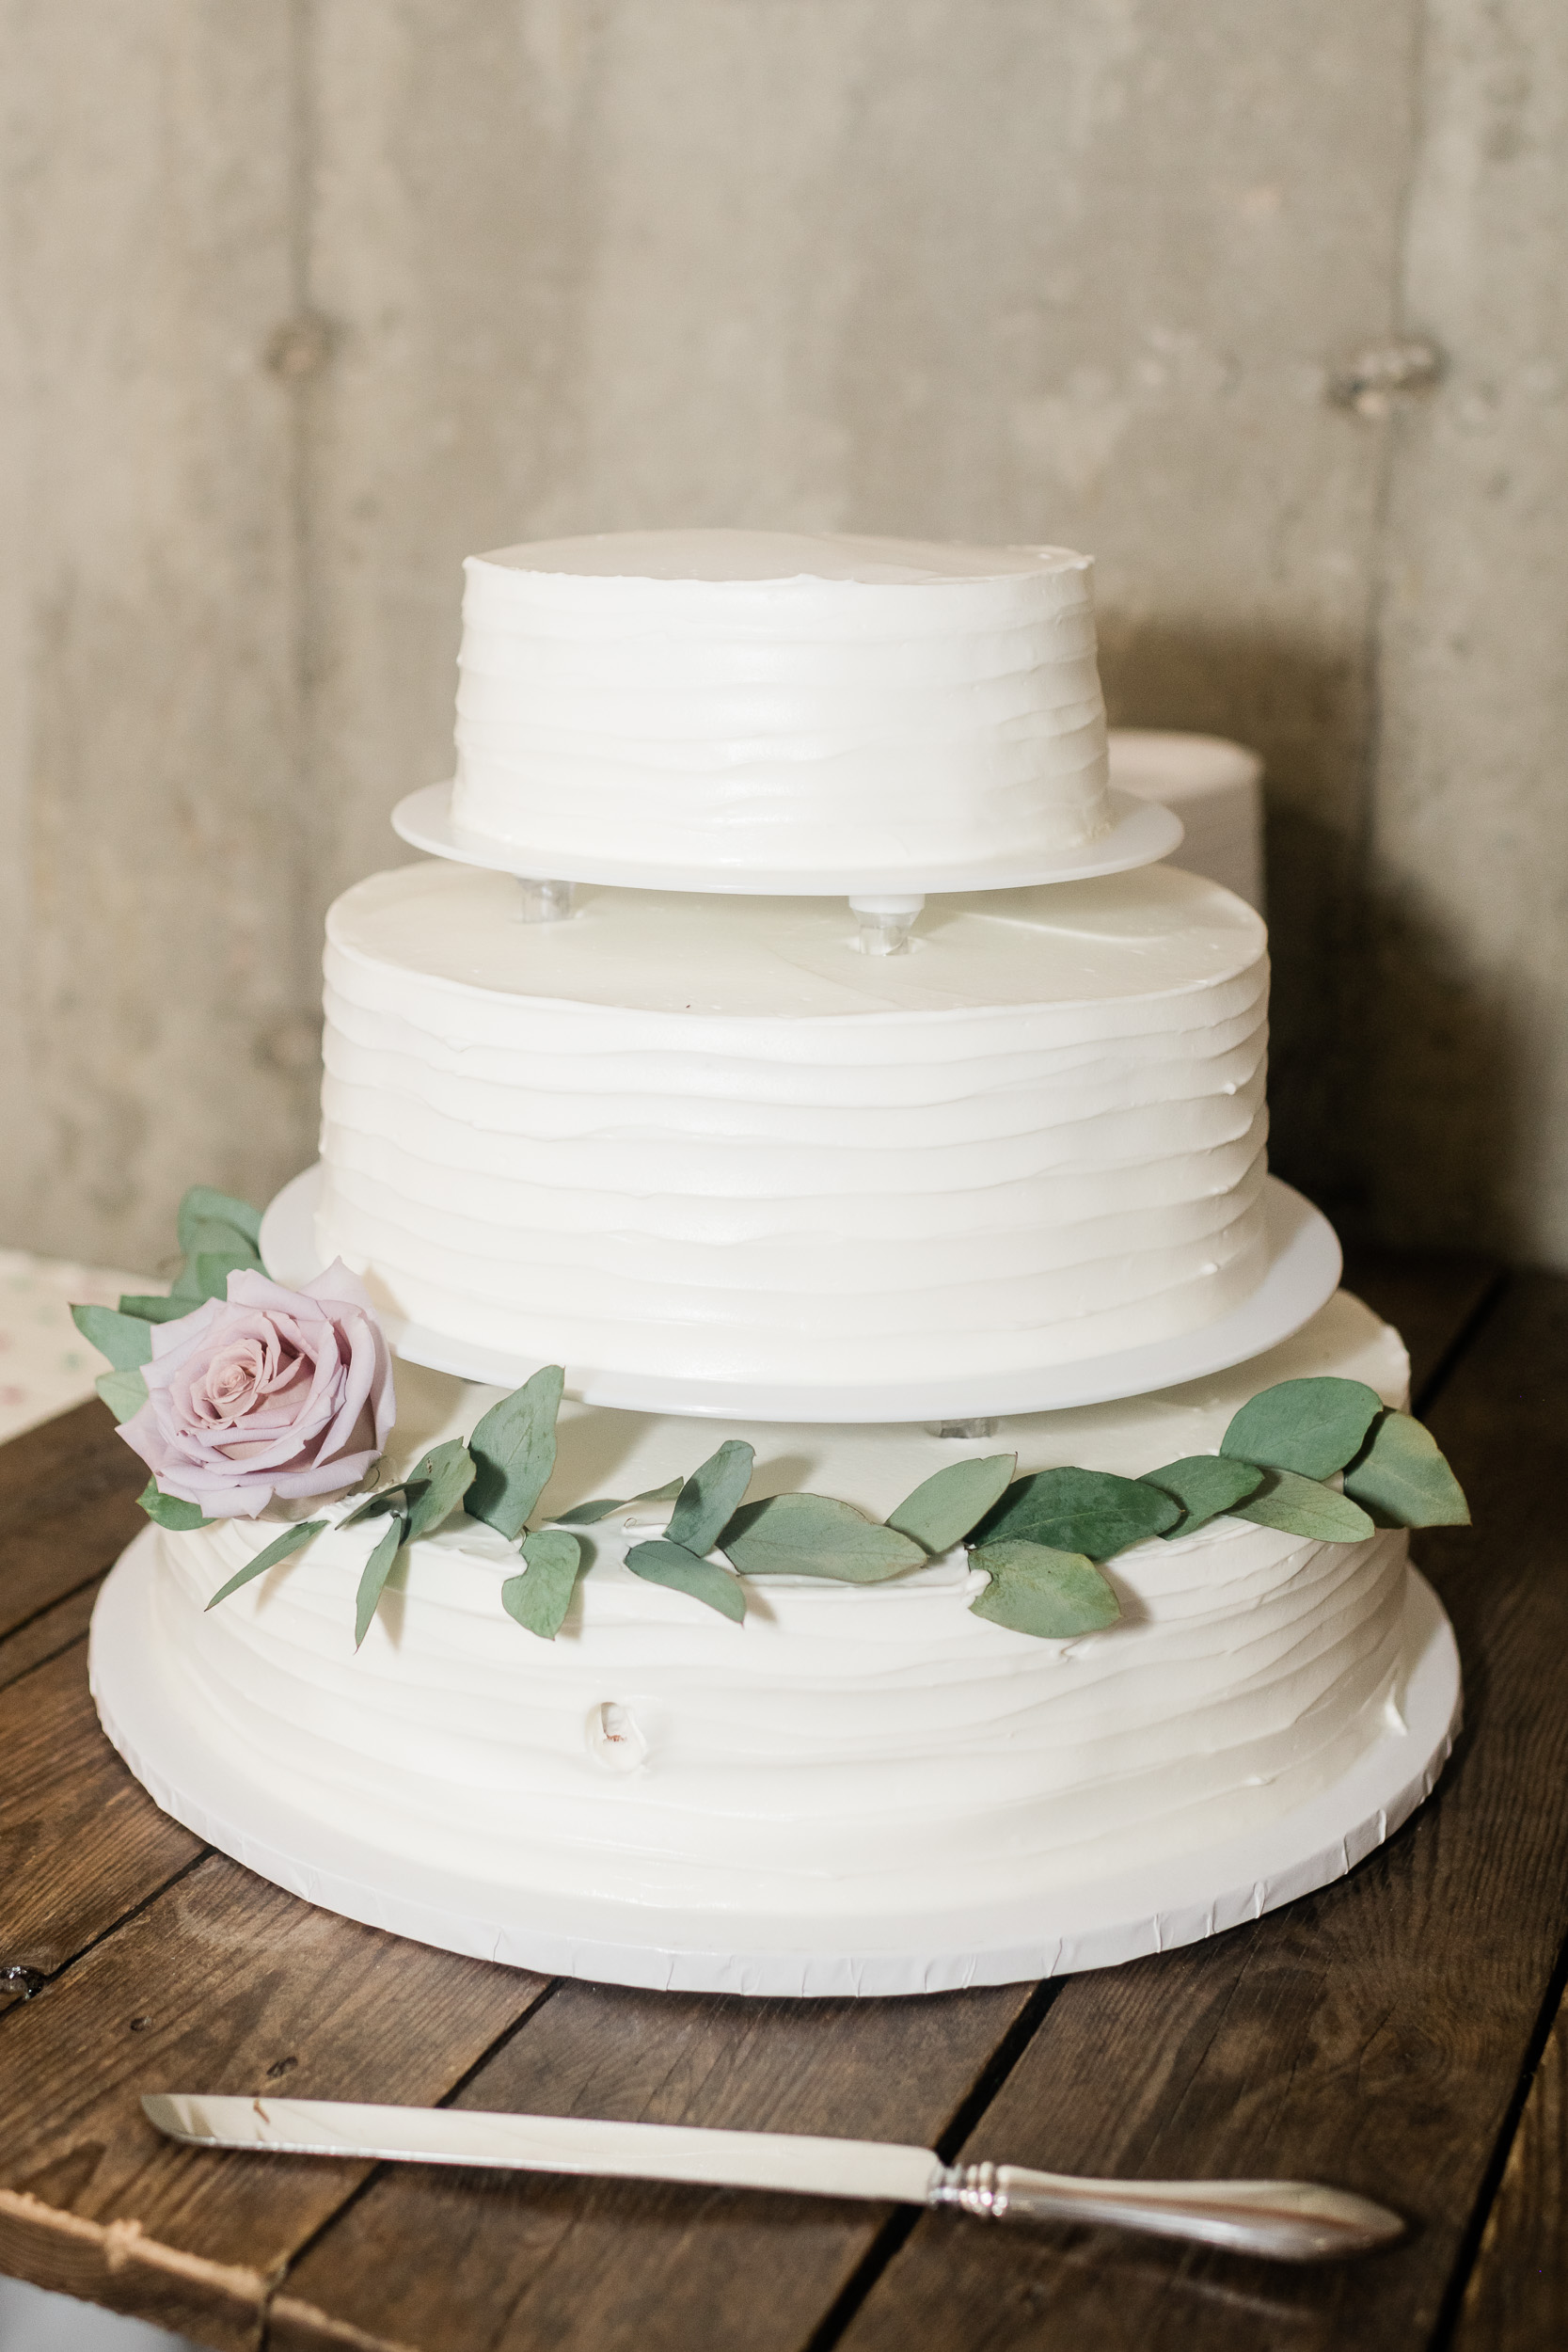 Wedding cake with white frosting and greenery